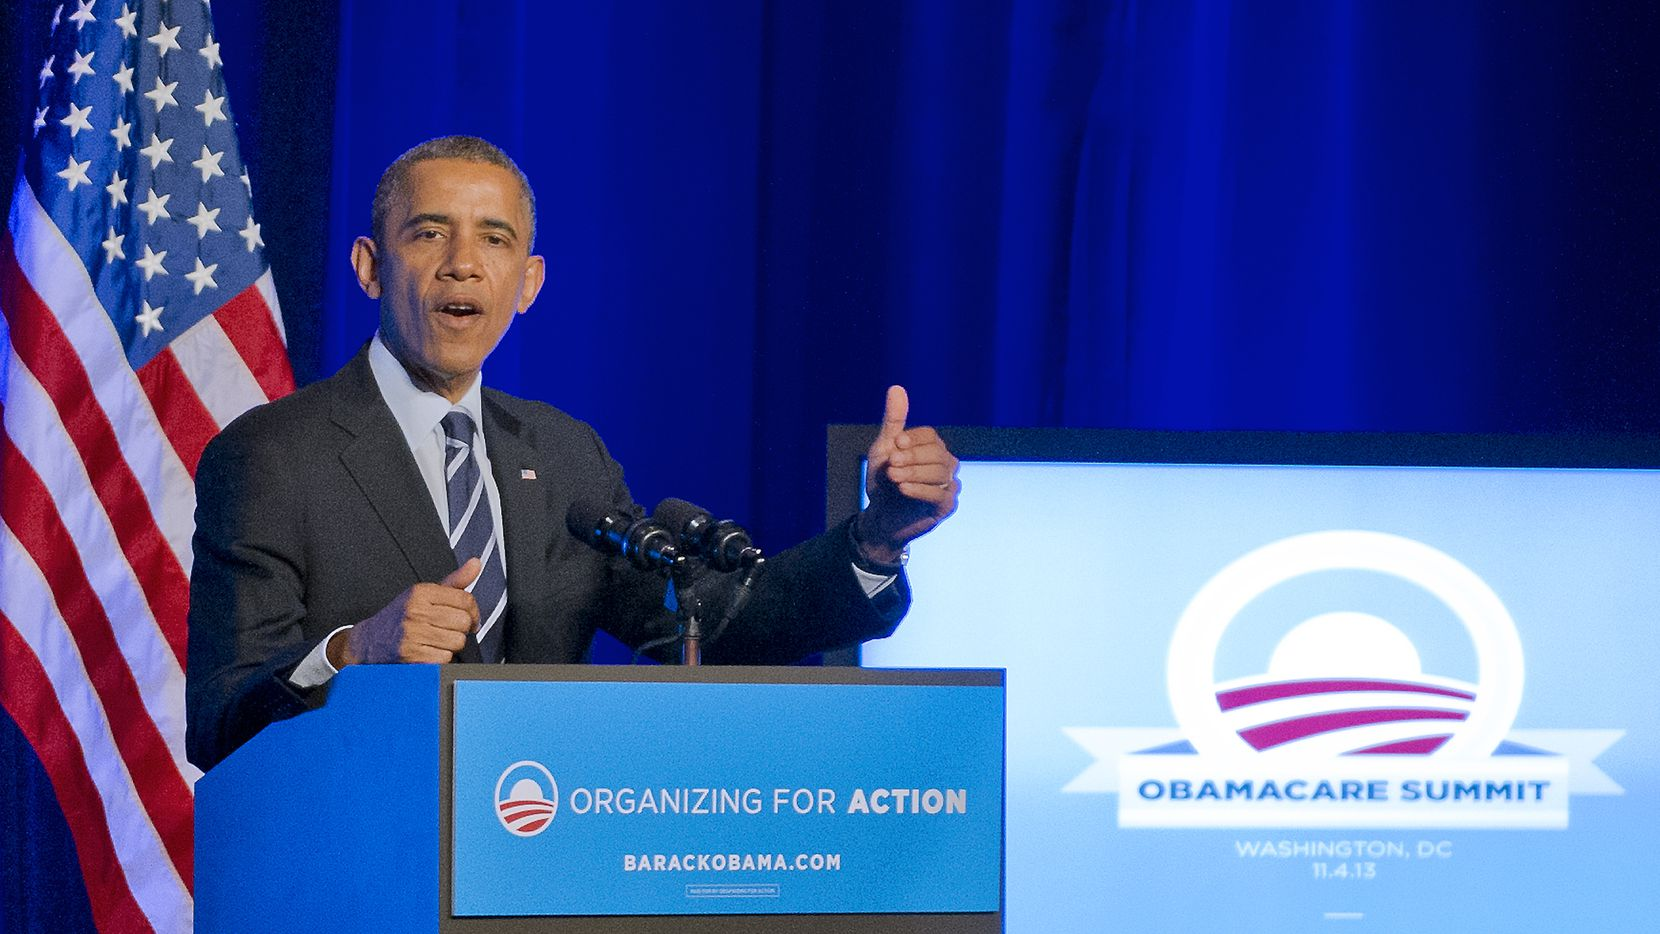 """President Barack Obama speaks at an Organizing for Action """"Obamacare Summit"""" on Nov. 4 at the St. Regis Hotel in Washington. The president is visiting Dallas on Nov. 6 to prod unisured Texans to sign up and attend two fundraisers."""